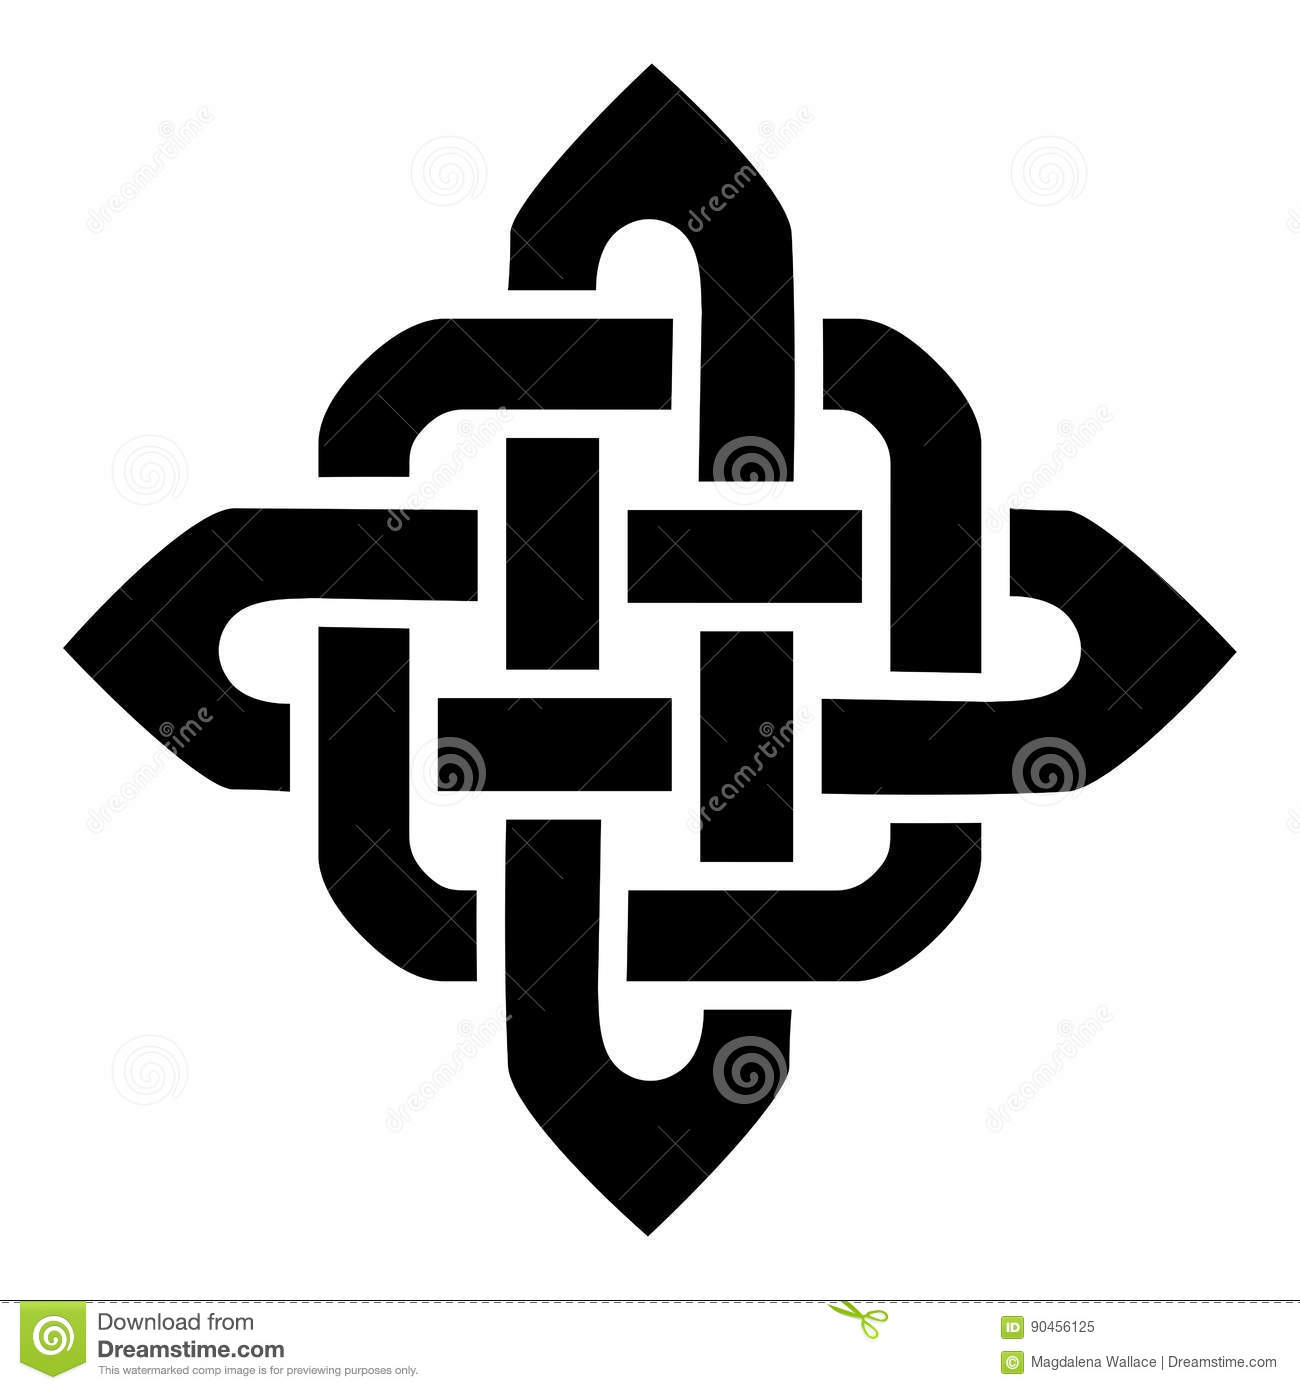 Celtic style sqaure element based on eternity knot patterns in celtic style sqaure element based on eternity knot patterns in black on white background inspired by irish st patrcks day buycottarizona Image collections